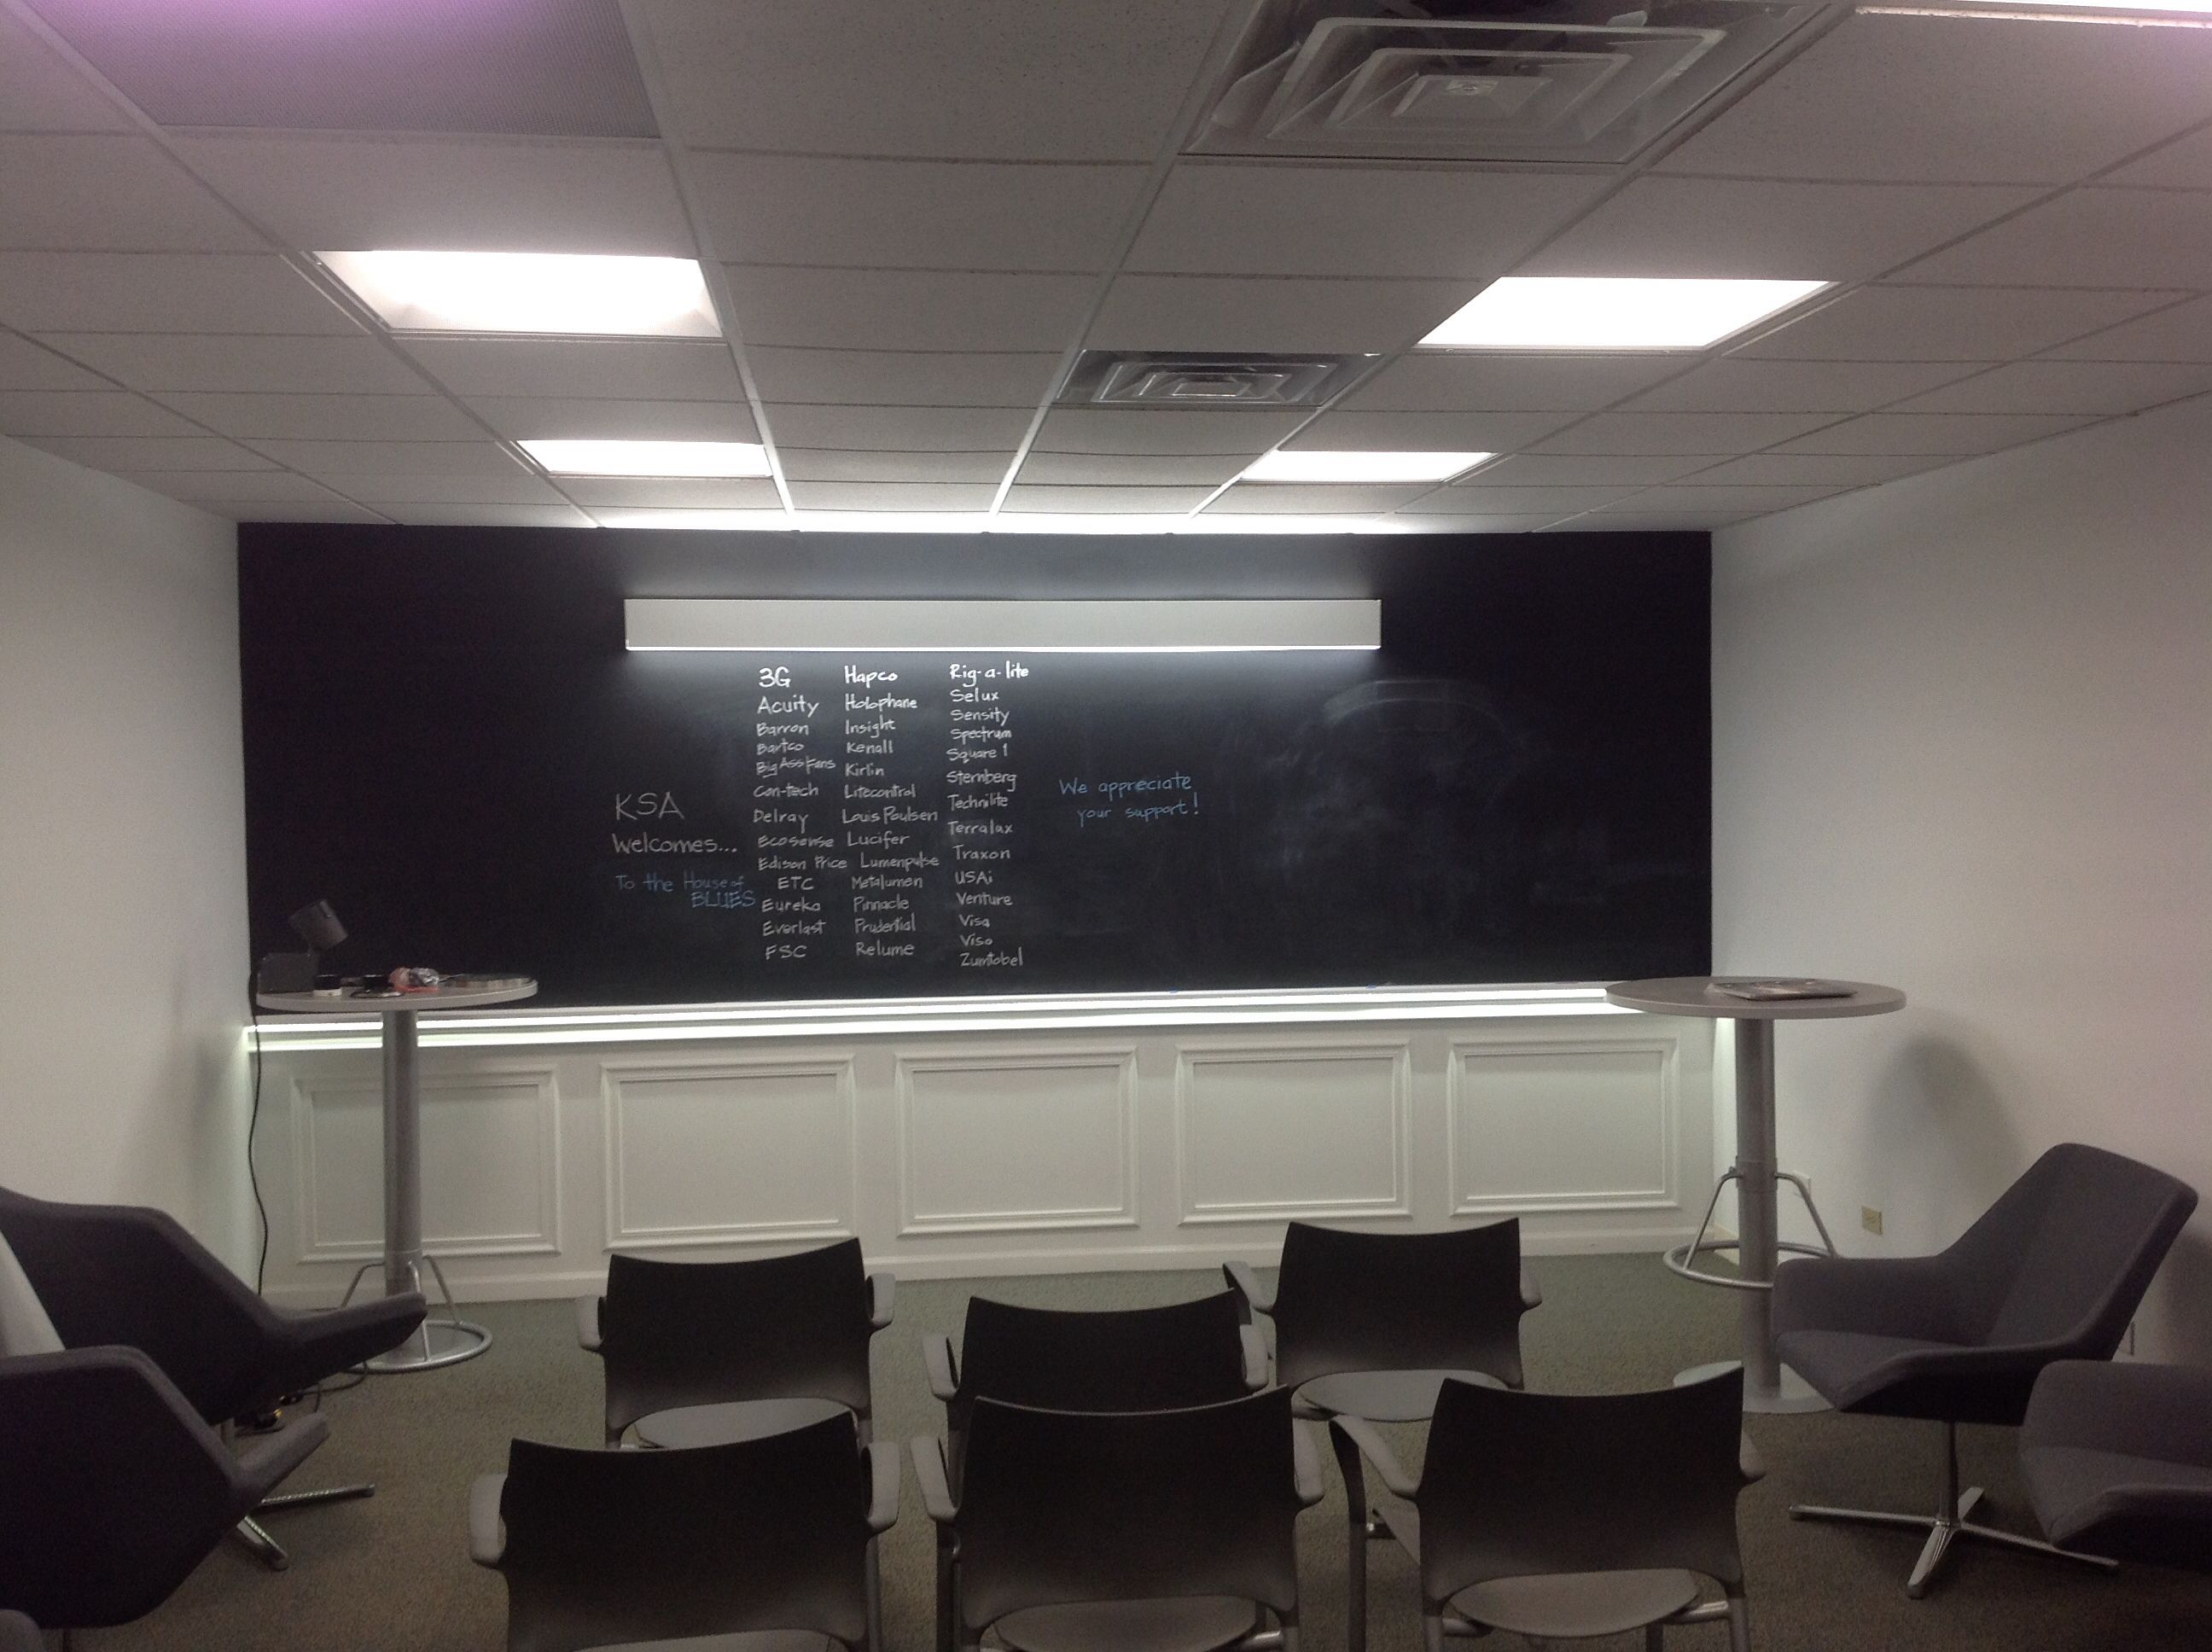 All Led Classroom Lighting At Ksa S Downtown Chicago Showroom Home Decor Light Project Home